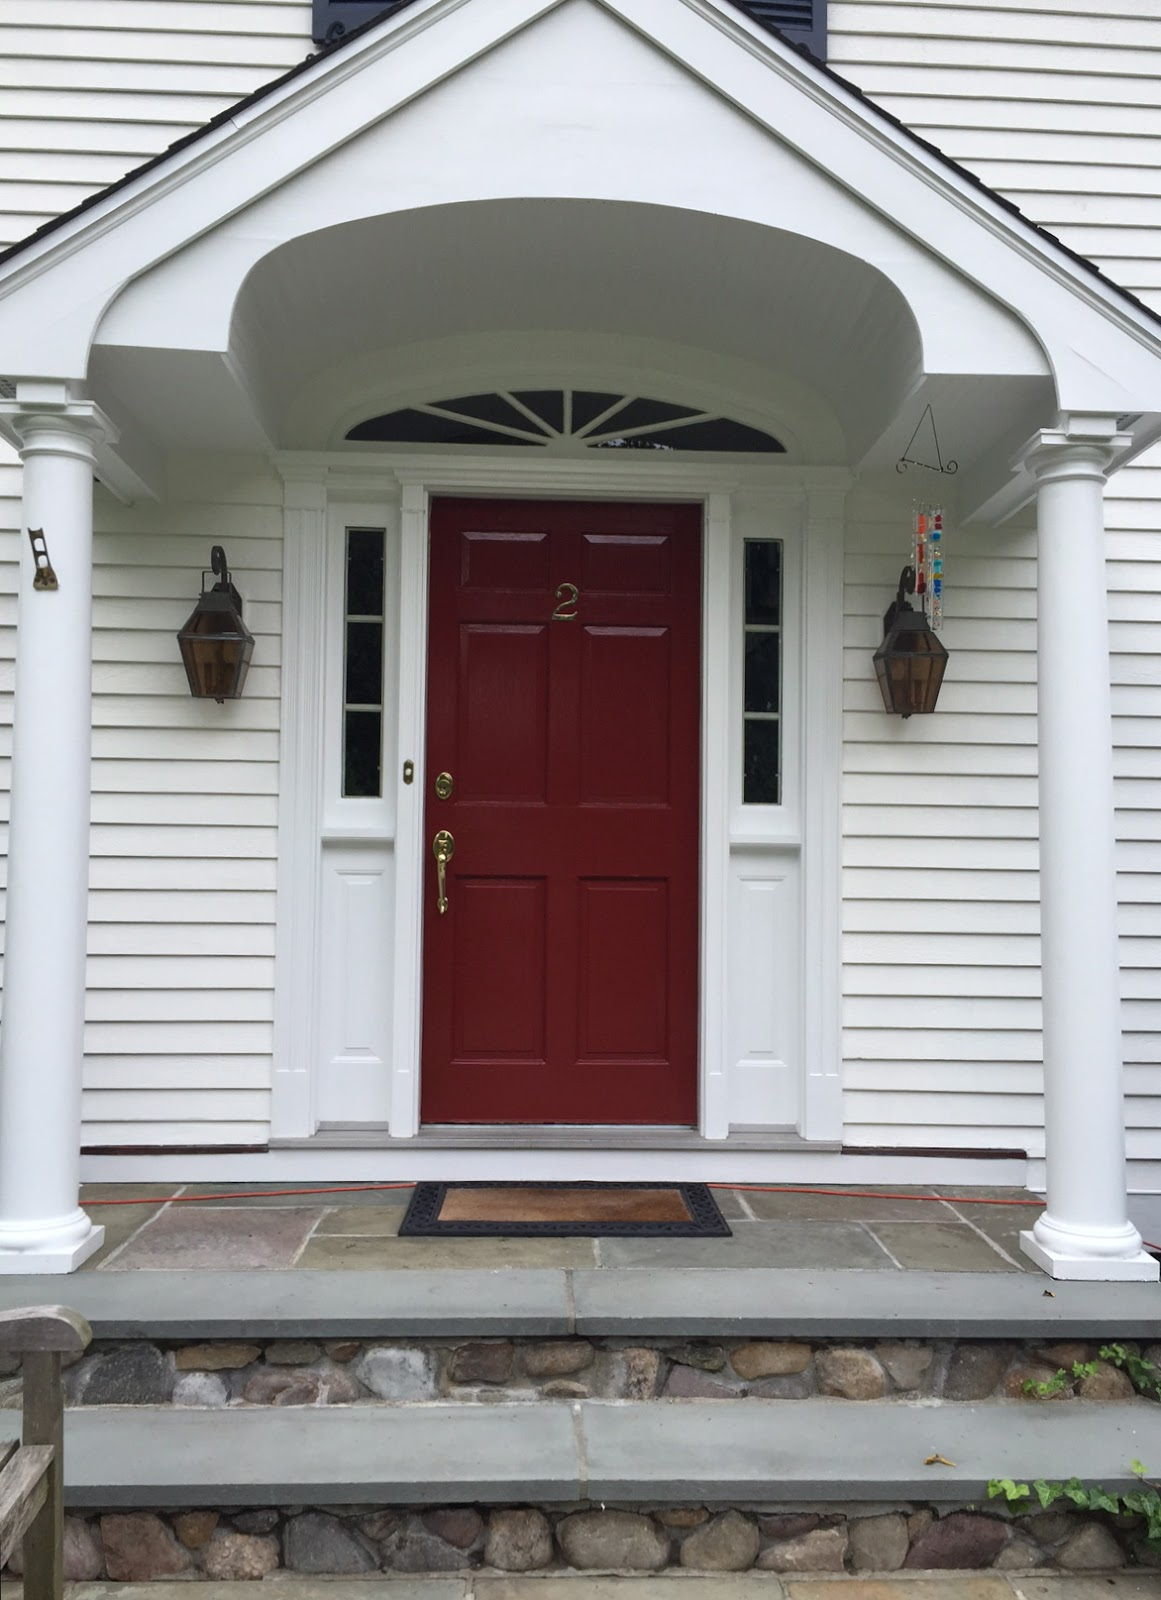 Body Color Benjamin Moore Simply White Oc 117 Trim Snow 66 Door Counry Redwood Pm 16